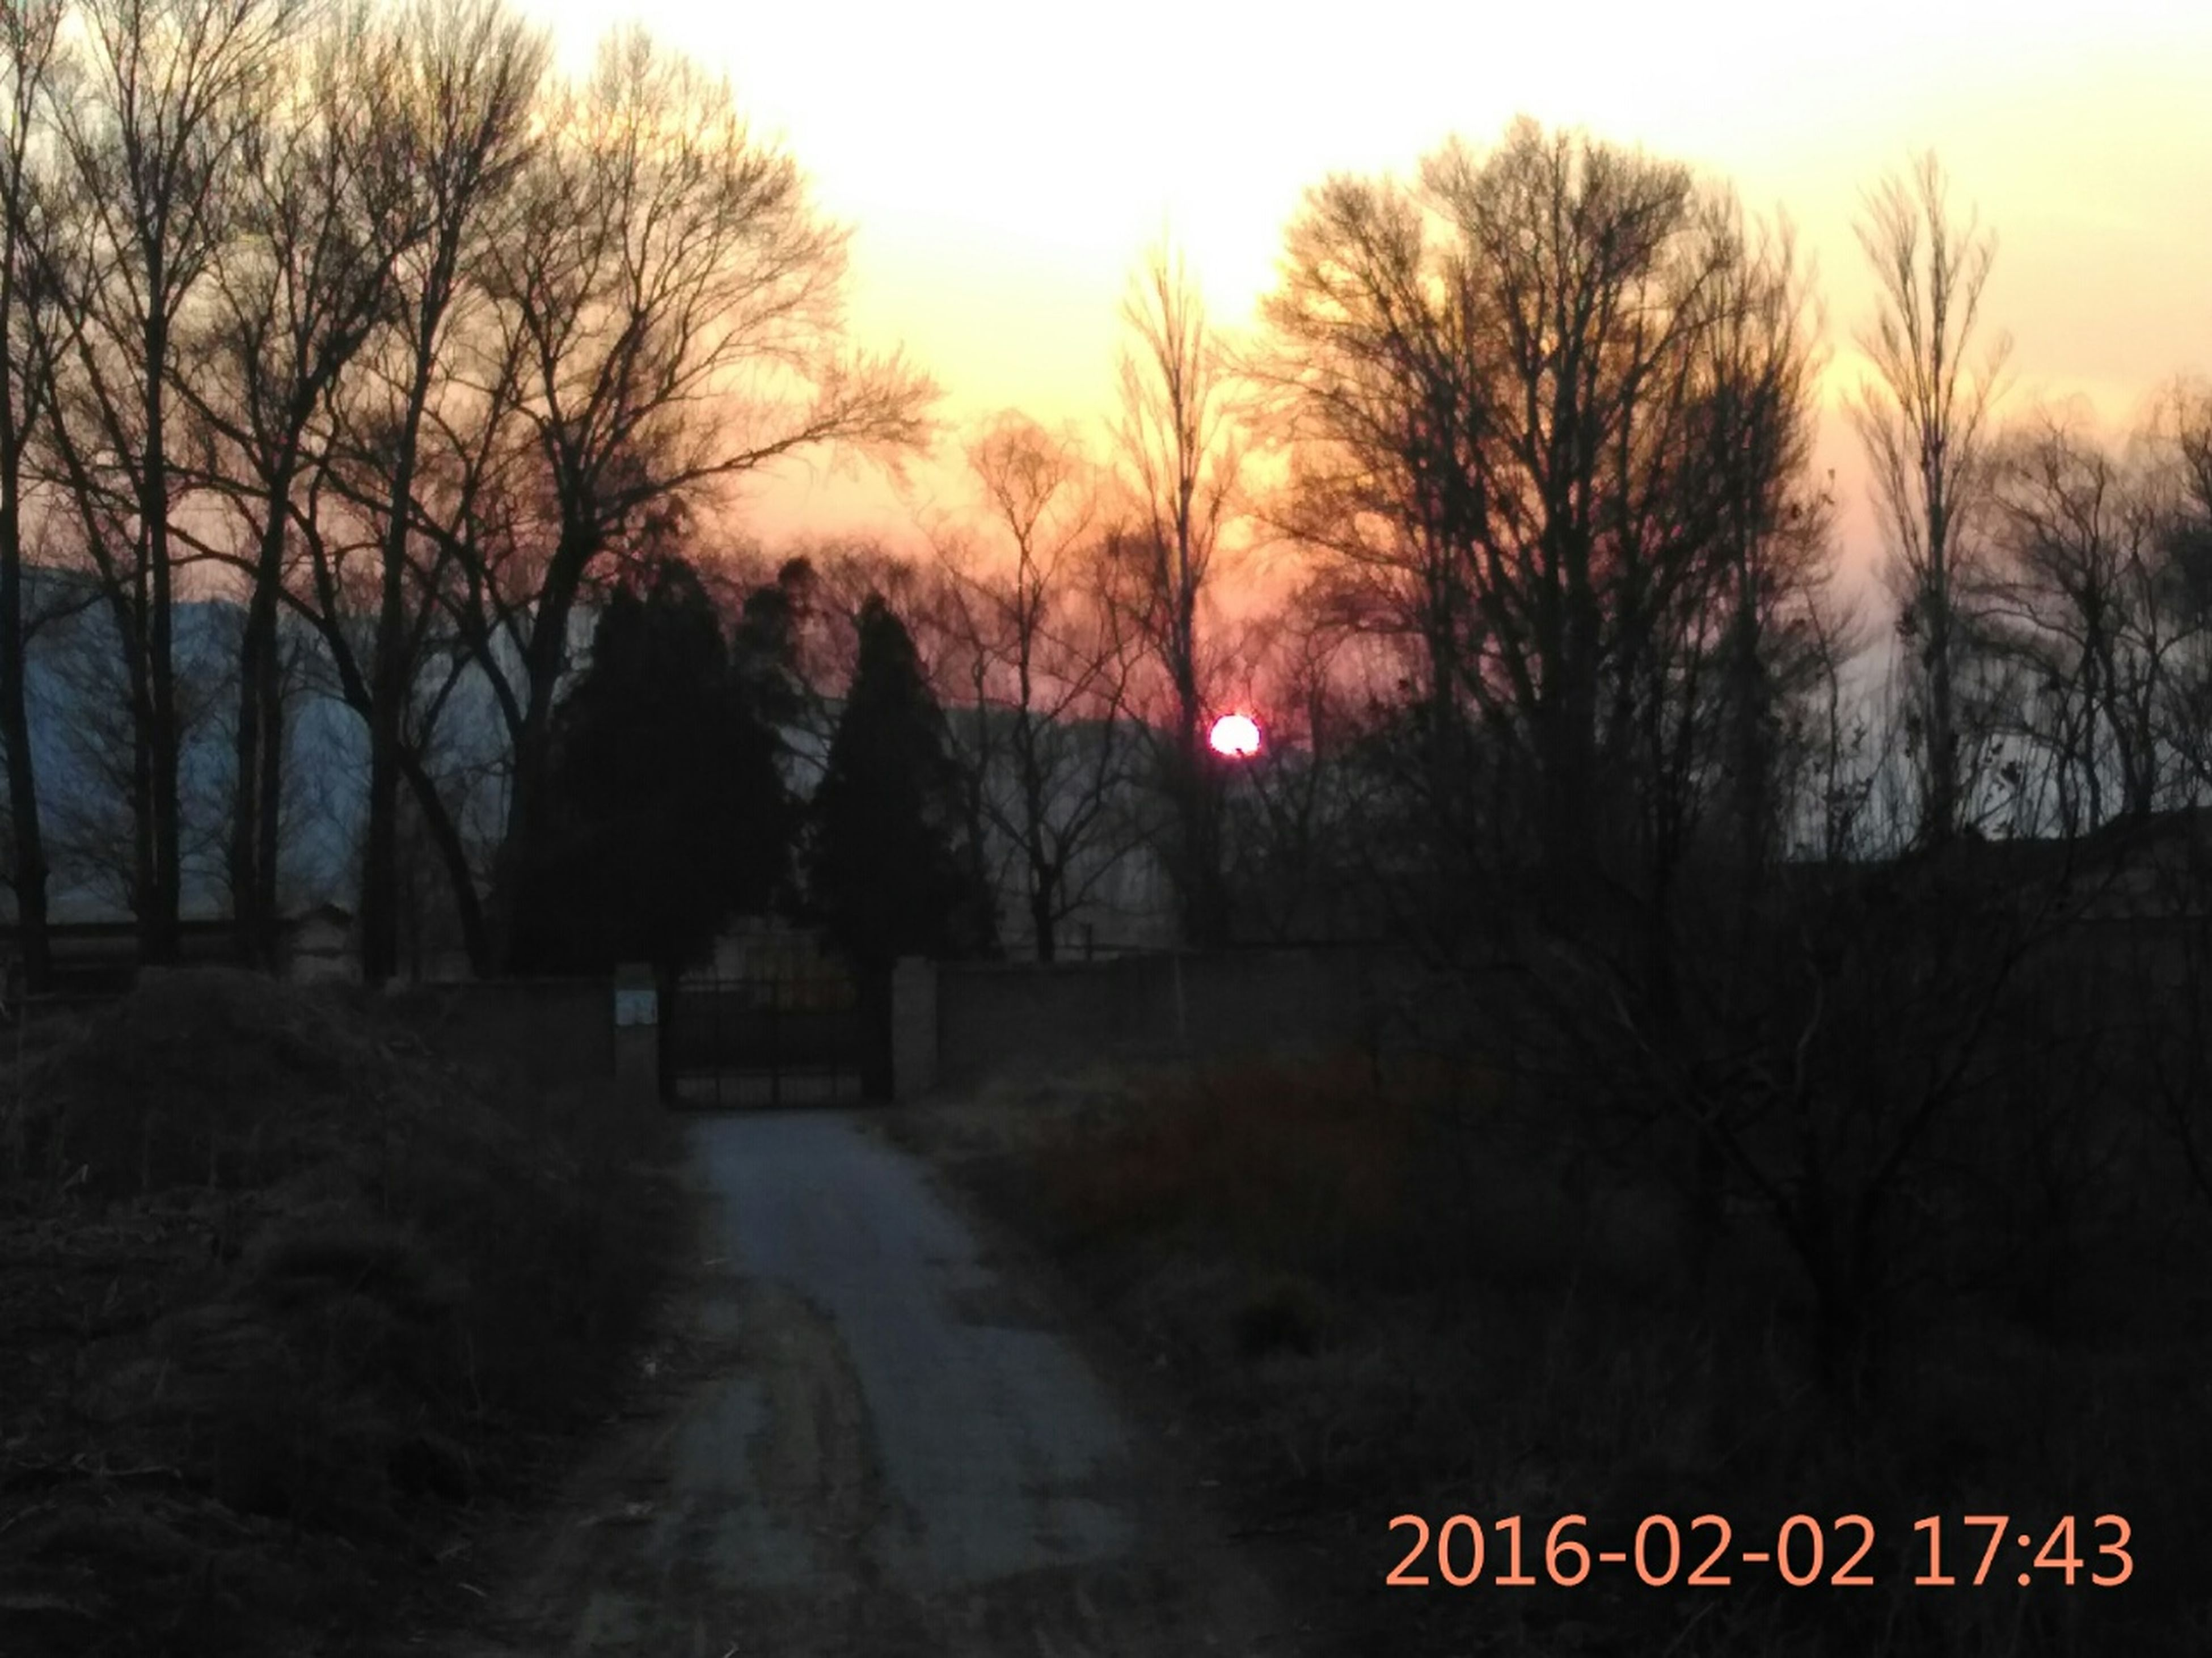 sunset, bare tree, tree, sky, text, silhouette, tranquil scene, tranquility, dusk, road, transportation, nature, scenics, orange color, western script, landscape, communication, beauty in nature, outdoors, branch